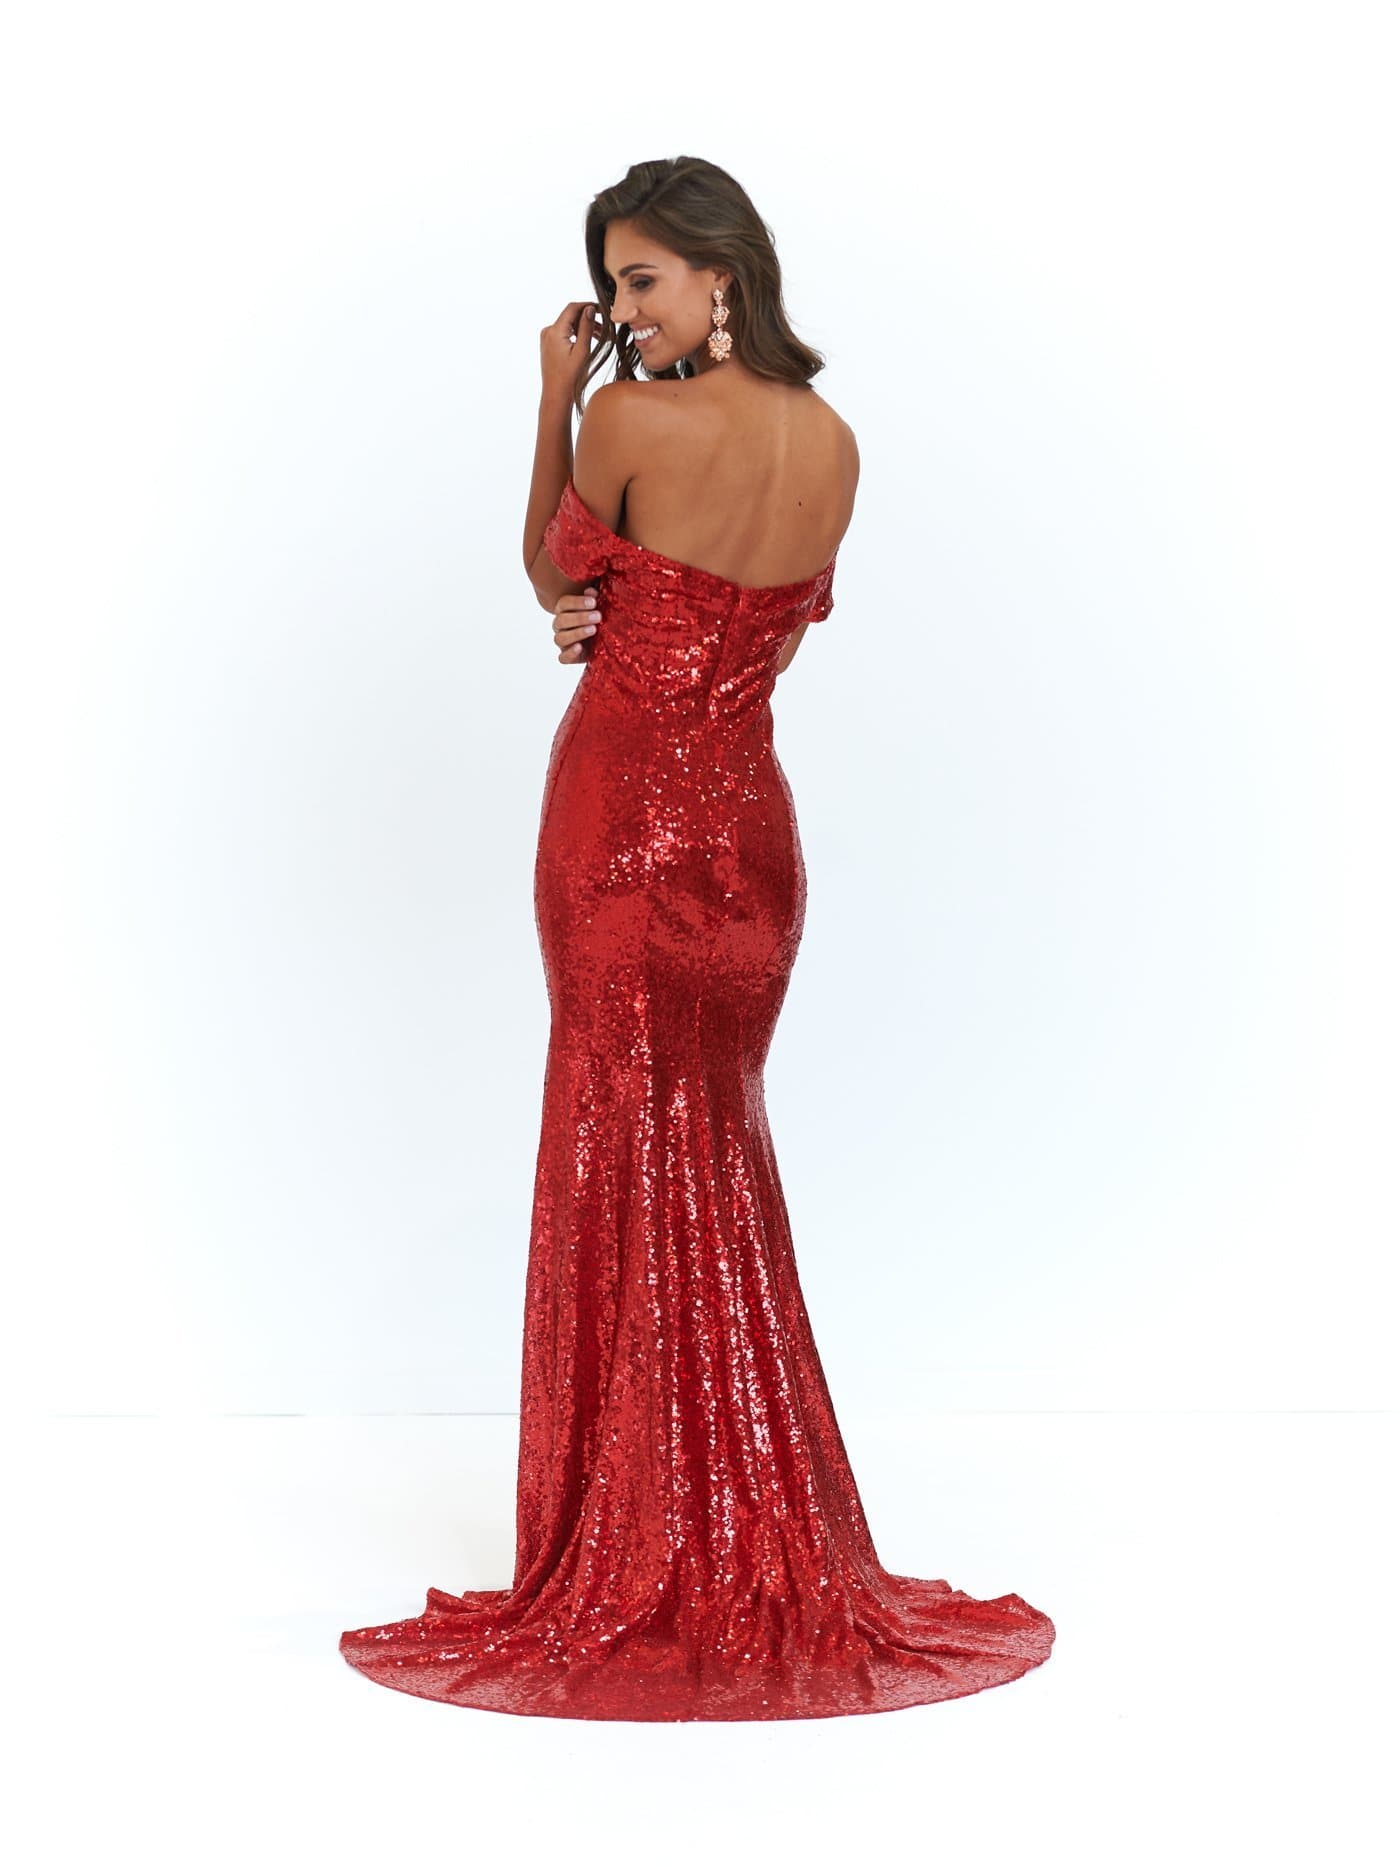 A&N Kim- Red Off-Shoulder Mermaid Fit Dress with Sequins